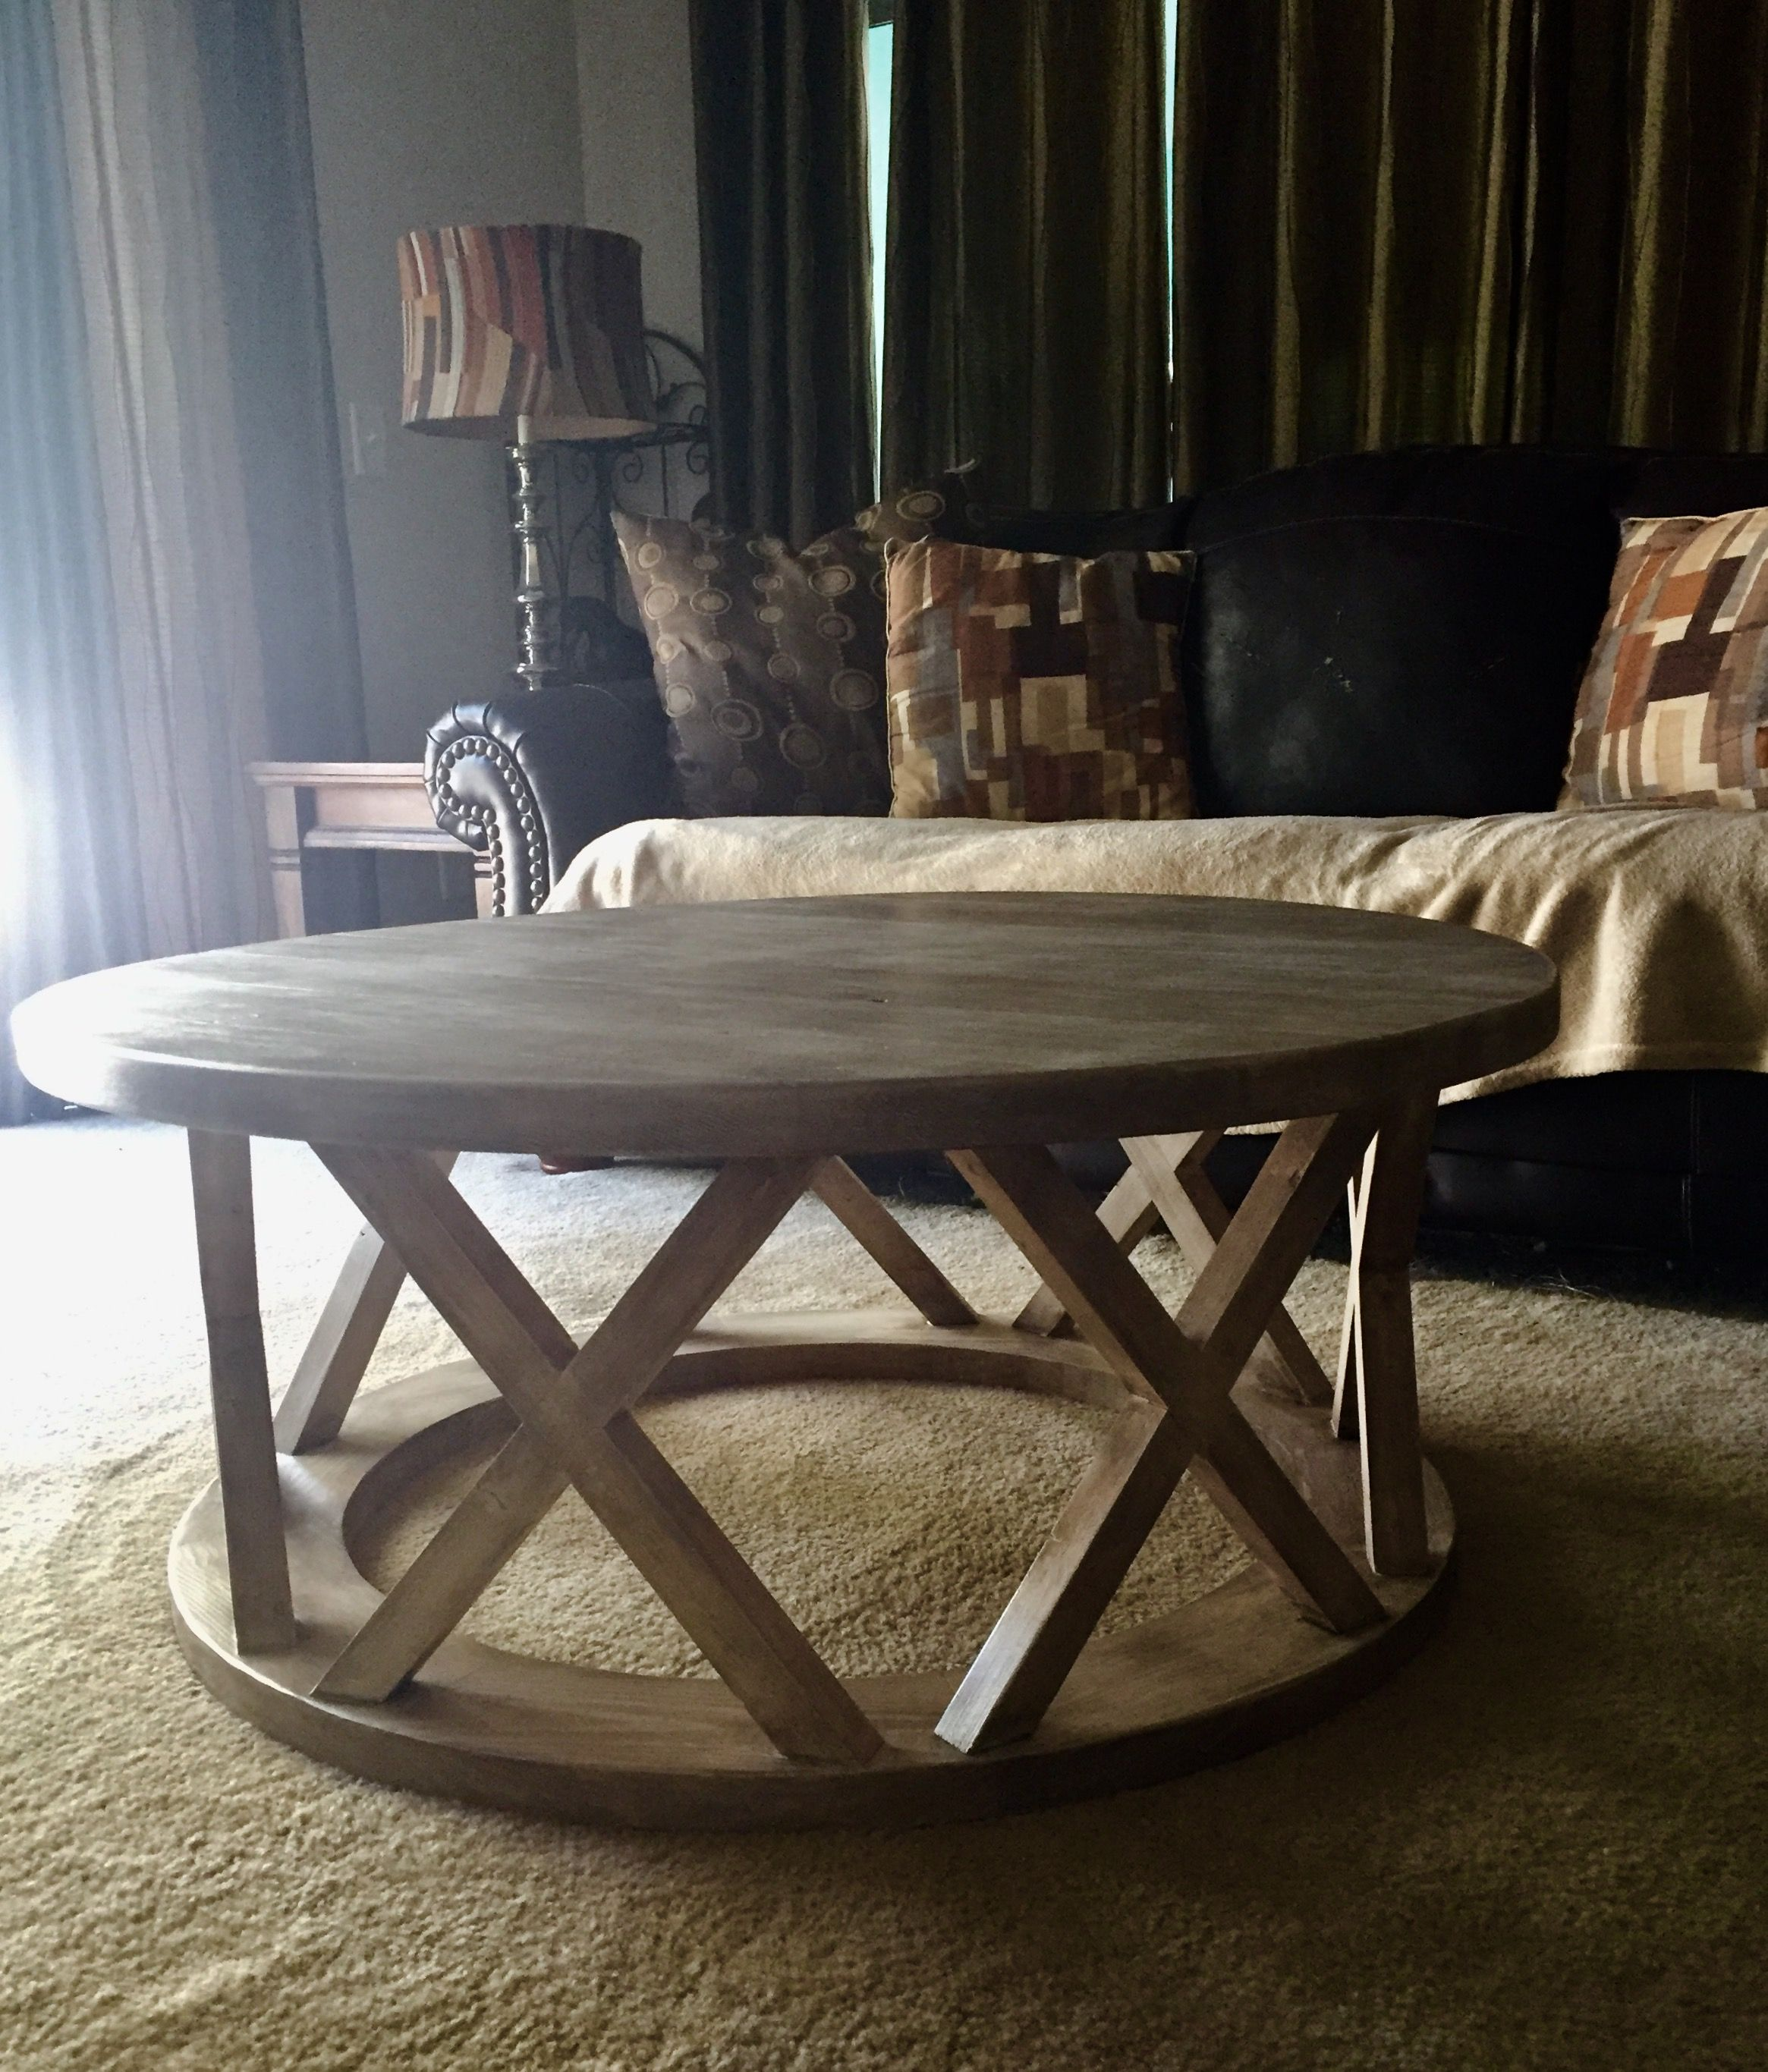 R S Custom Design 42 Round Coffee Table Coffee Table Round